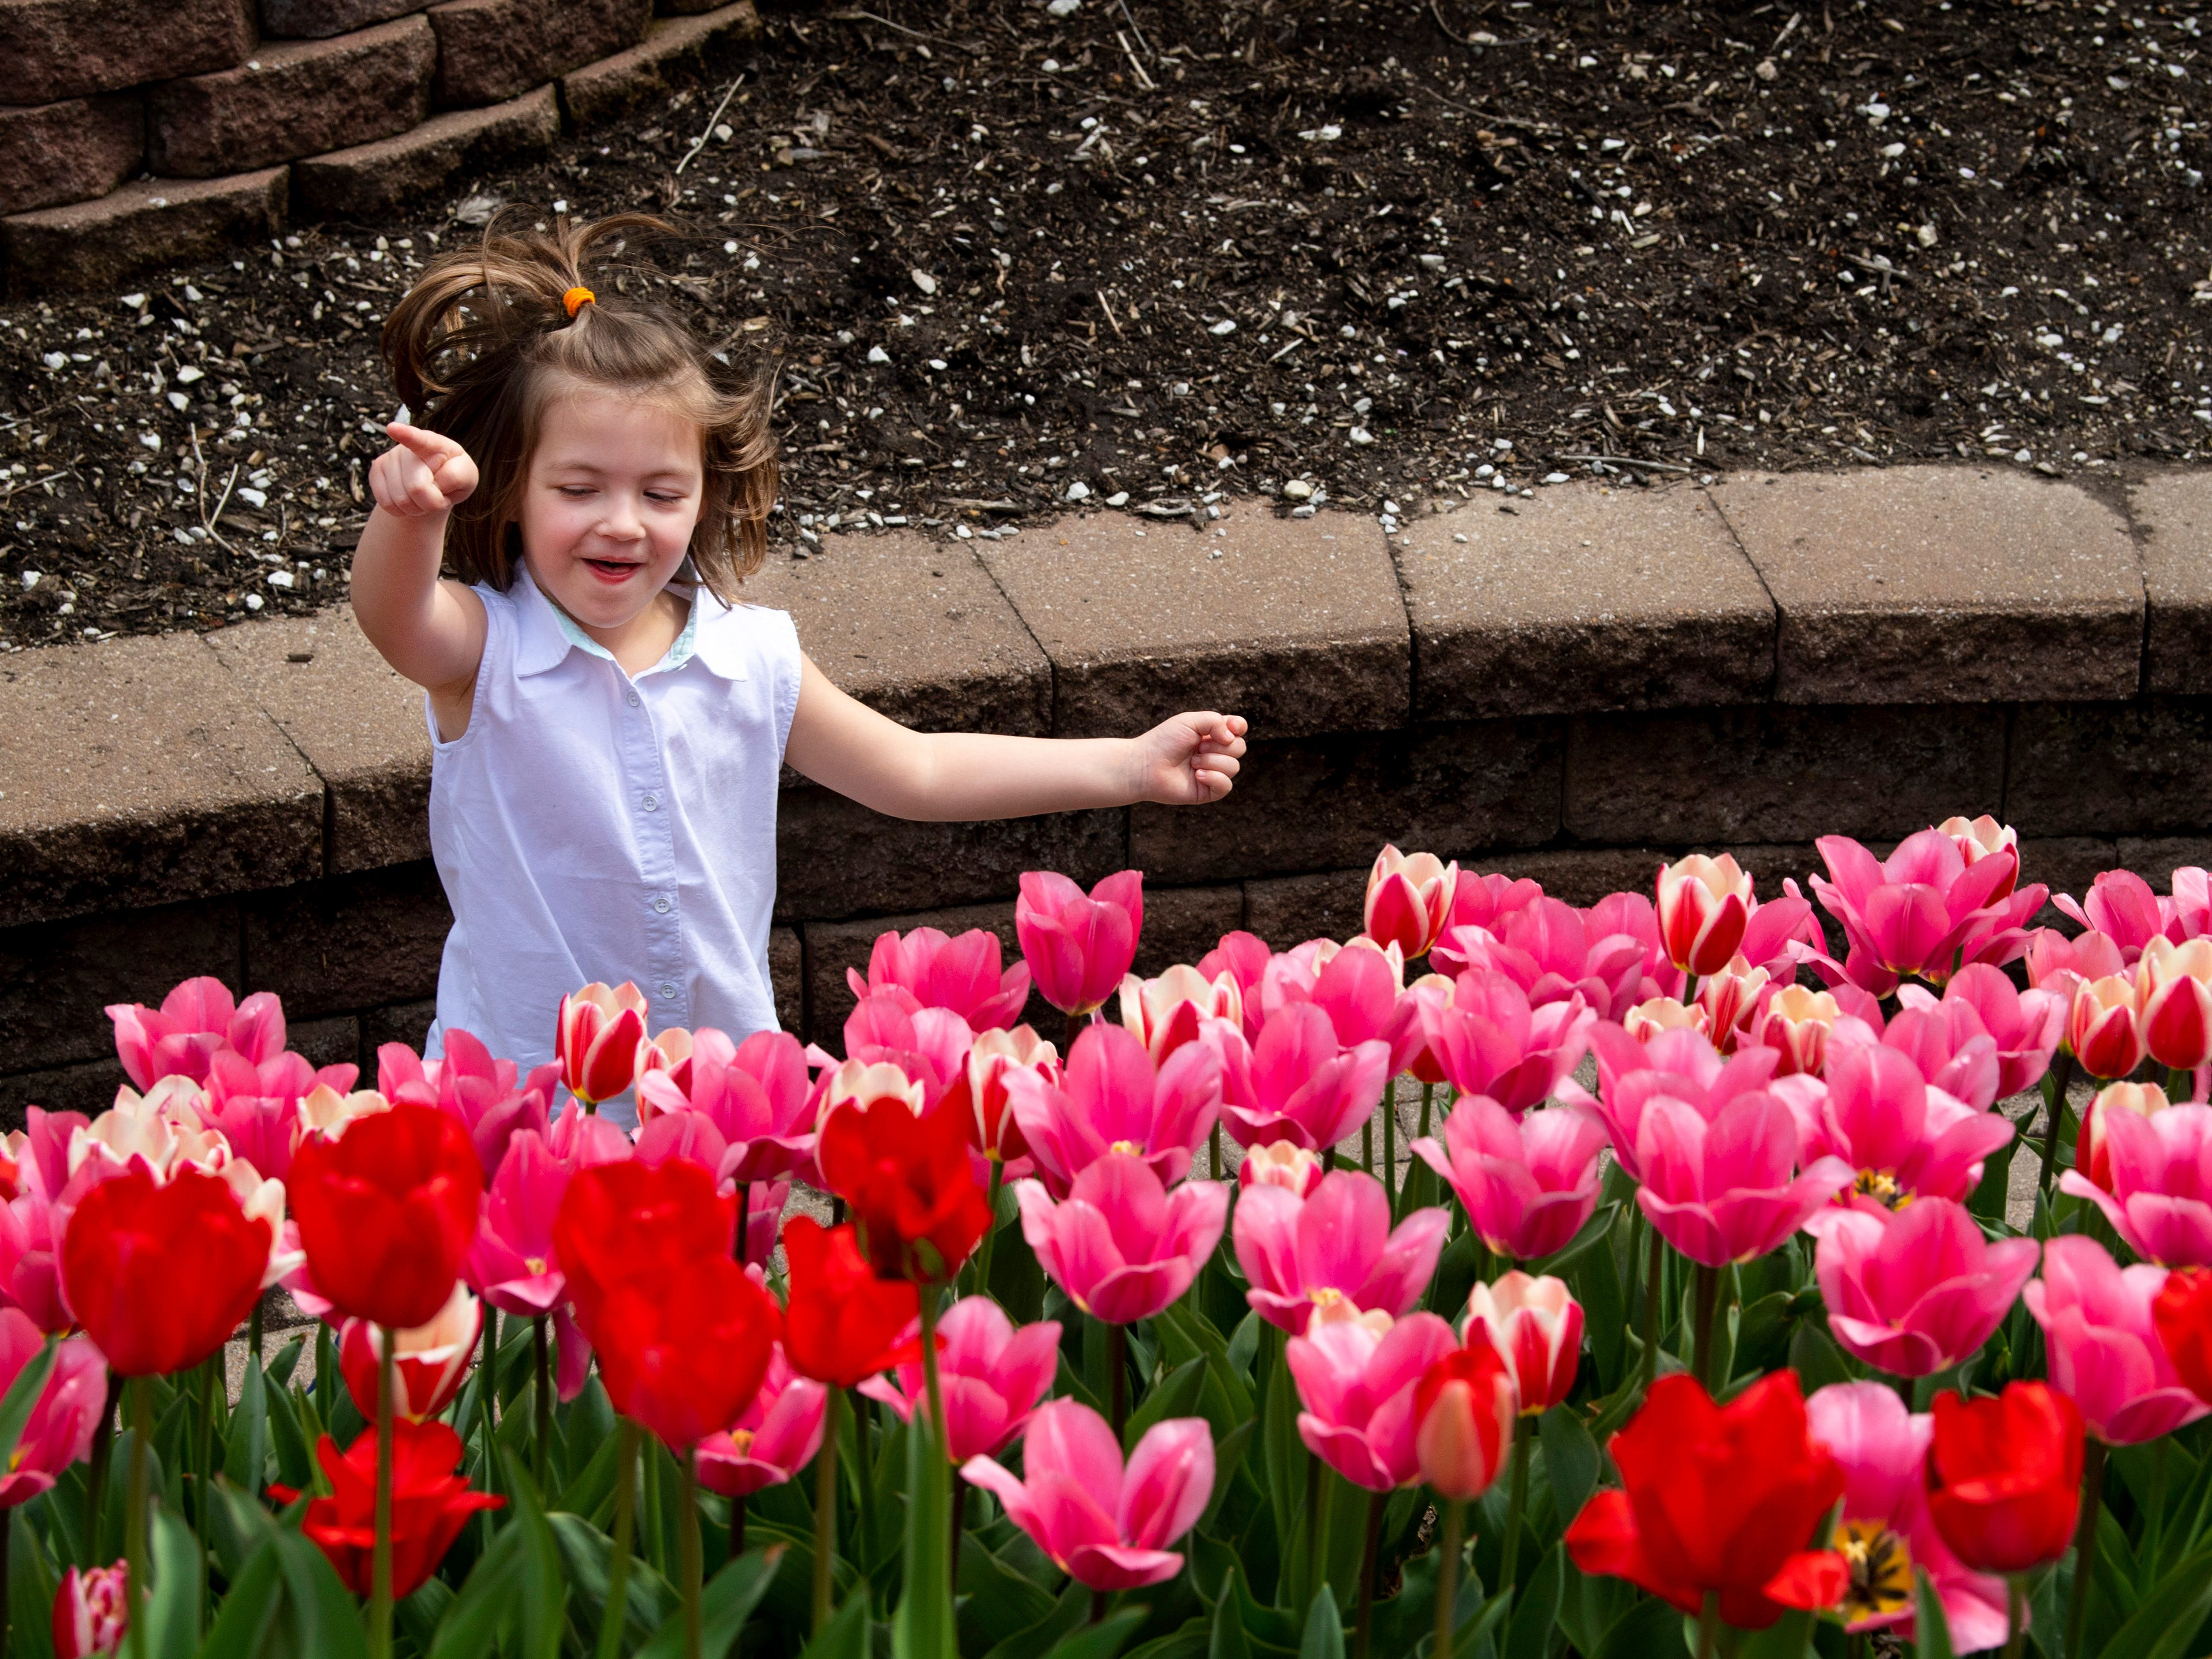 Ellie Feltz, 4, of Evansville points out the tulips for her brother, Jeffrey, 1, and mom, Katie, while running along the path at the Evansville Visitors Center Pagoda Monday afternoon. The temperatures had already hit the low 70s for the day and the next few days are forecast to also be in the low 70s with plenty of sunshine.